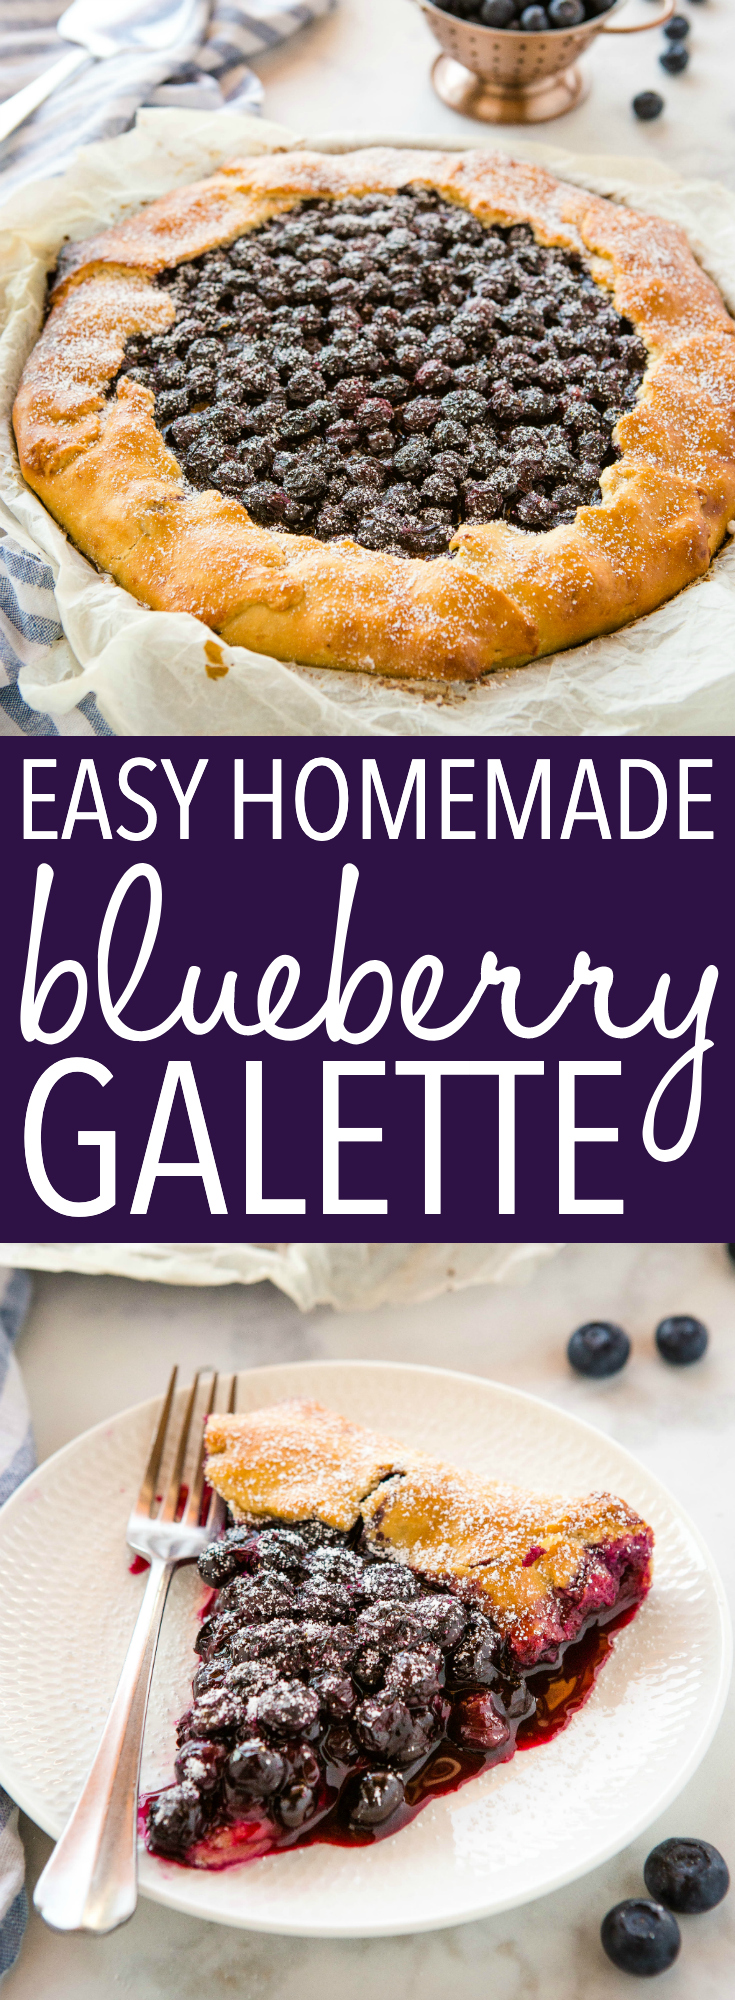 This Easy Blueberry Galette is the perfect simple summer dessert made with an easy homemade pie crust and fresh juicy blueberries! Recipe from thebusybaker.ca! #galette #homemadepie #blueberrypie #blueberries #fresh #dessert #summer #harvest via @busybakerblog